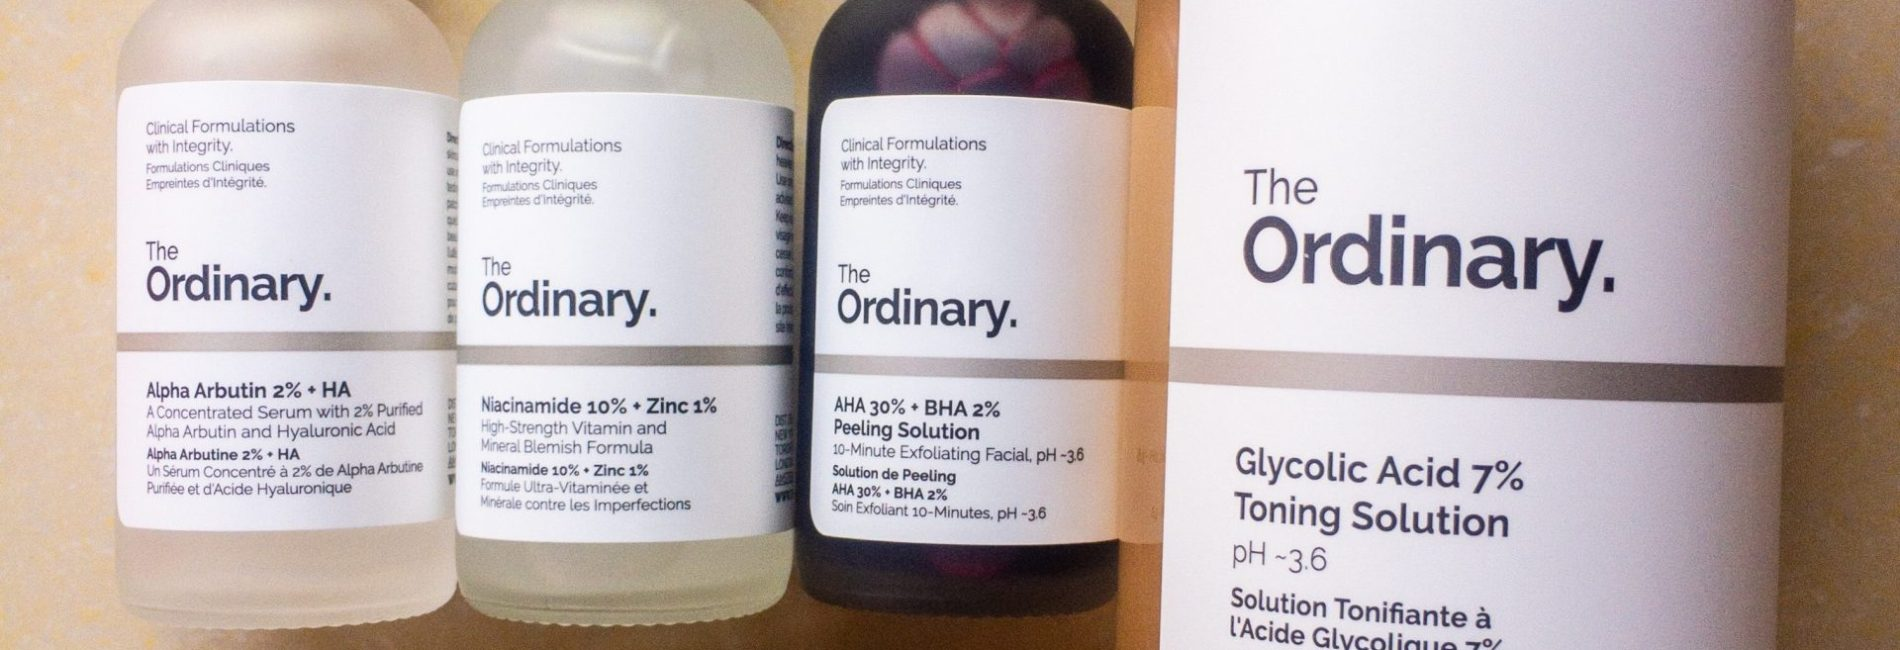 First Impressions: The Ordinary Skincare